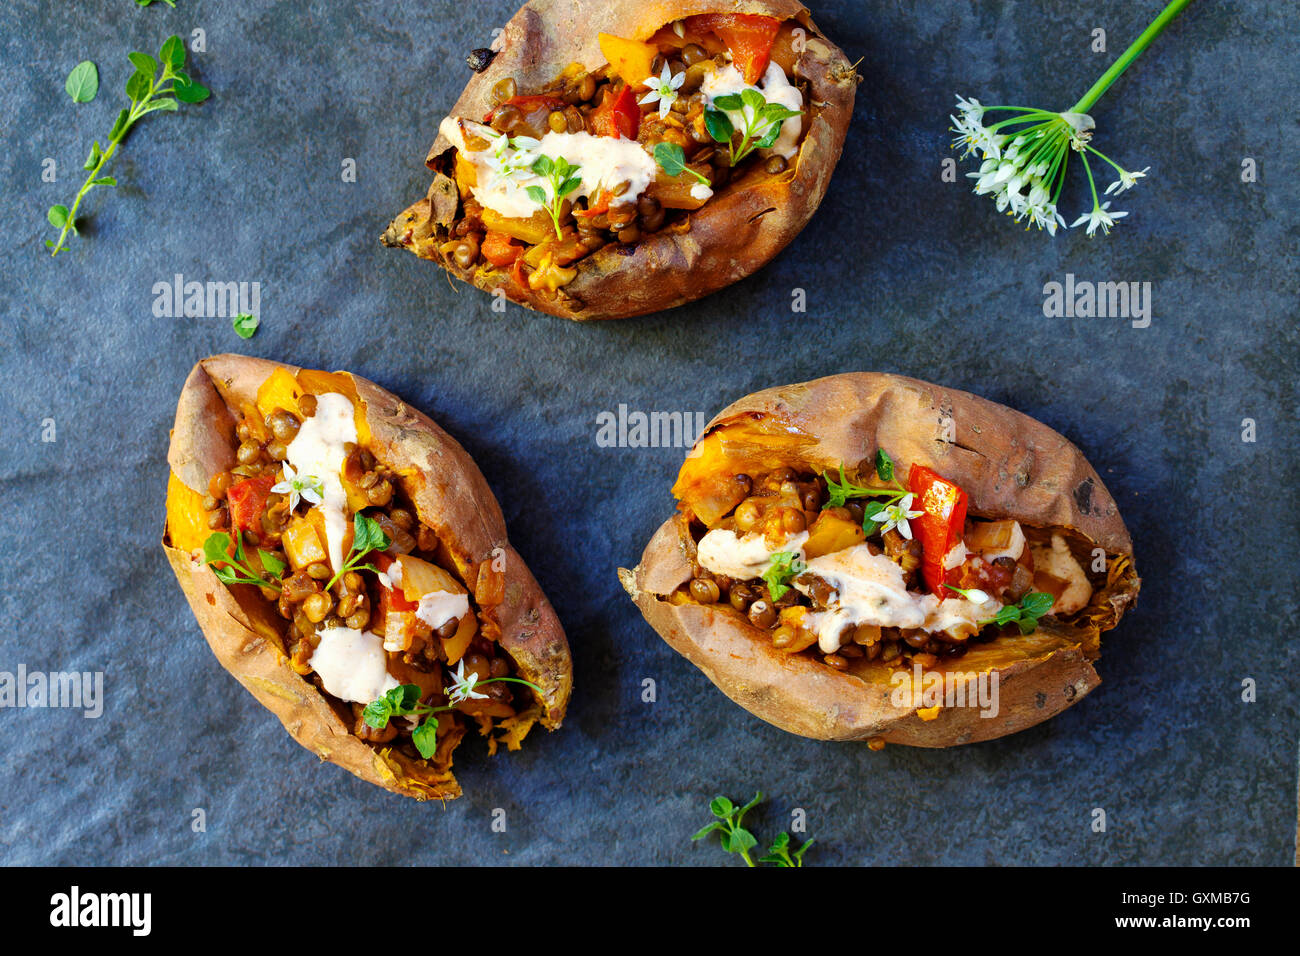 Sweet potatoes with spicy lentils, yellow pepper and tomato filling, thyme, garlic flowers and chipotle sour cream - Stock Image